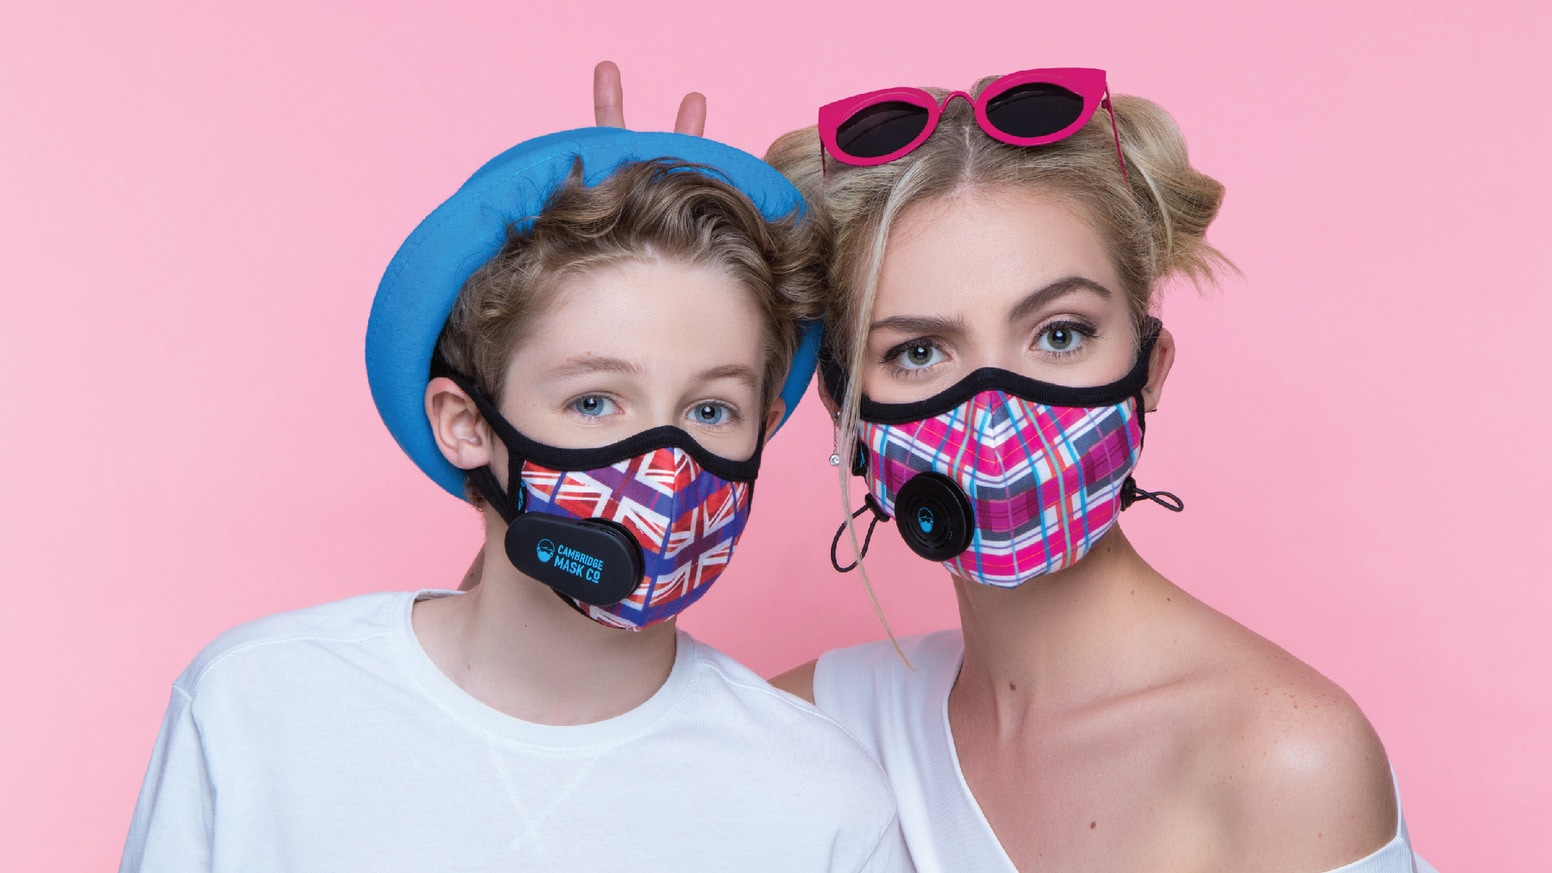 Our respirator measures breathing activity, pollutants around you and pairs with our app, which tells you when to wear your mask!